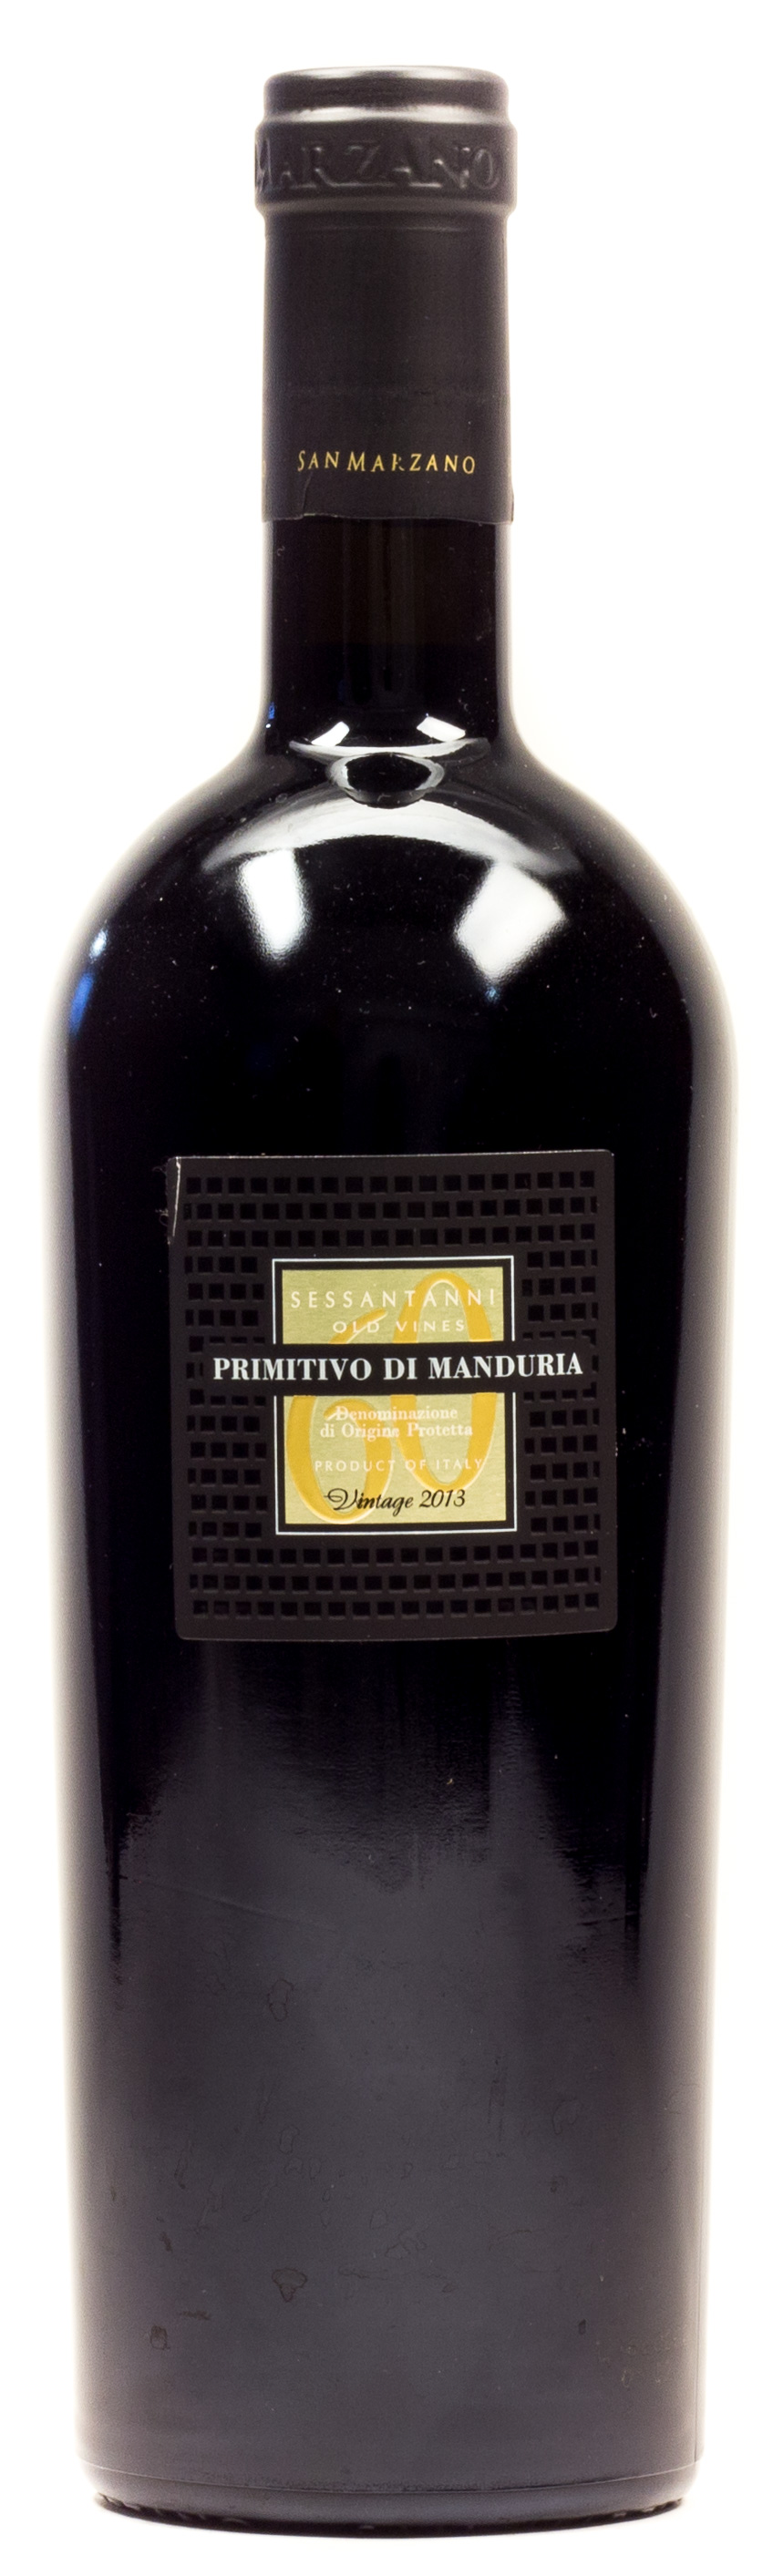 Sessantanni Old Vines Primitivo 0,75 l Glas